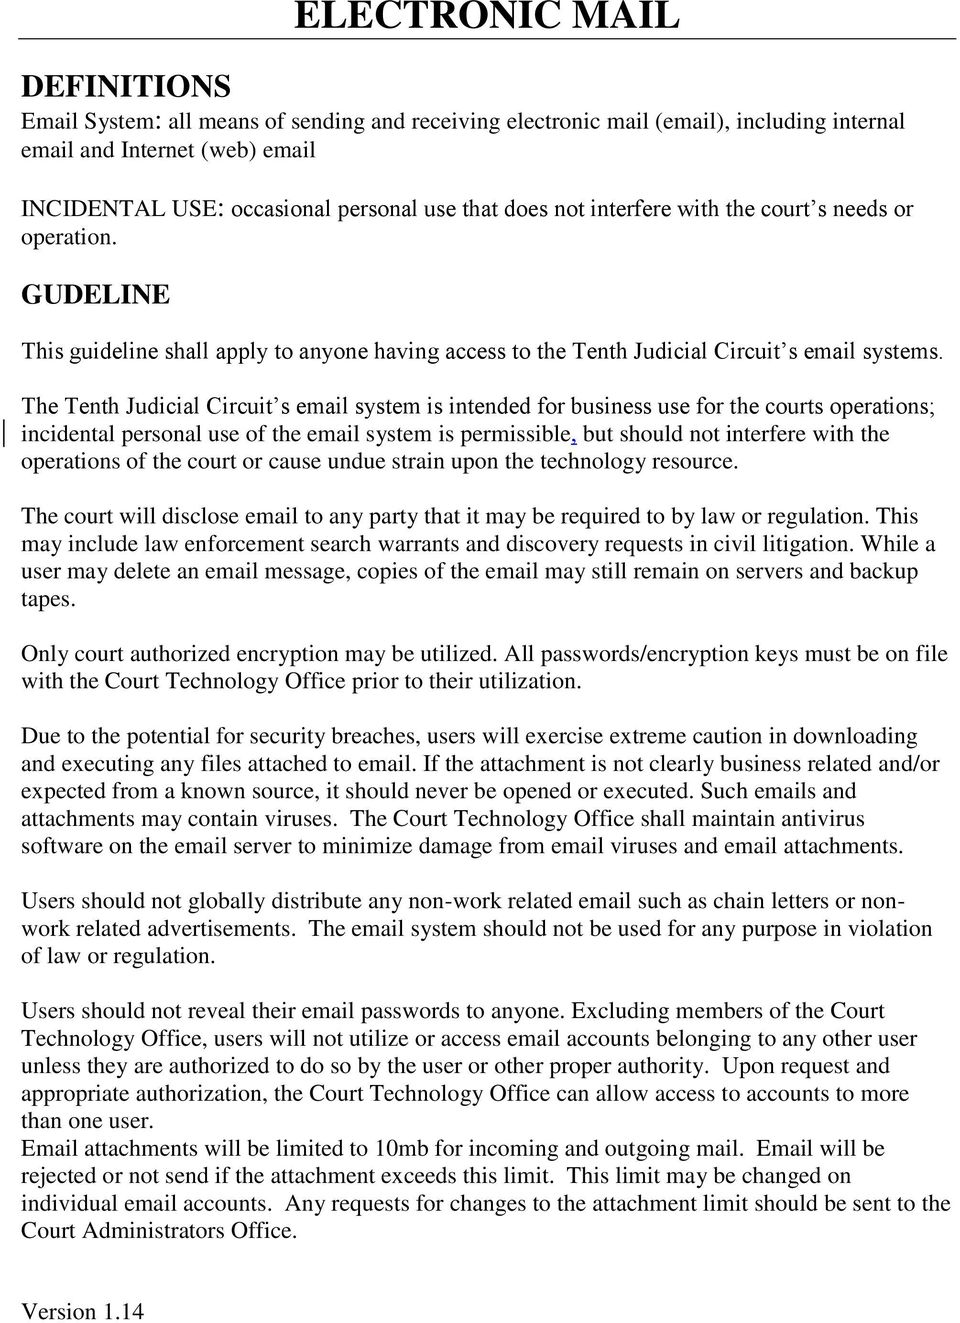 The Tenth Judicial Circuit s email system is intended for business use for the courts operations; incidental personal use of the email system is permissible, but should not interfere with the